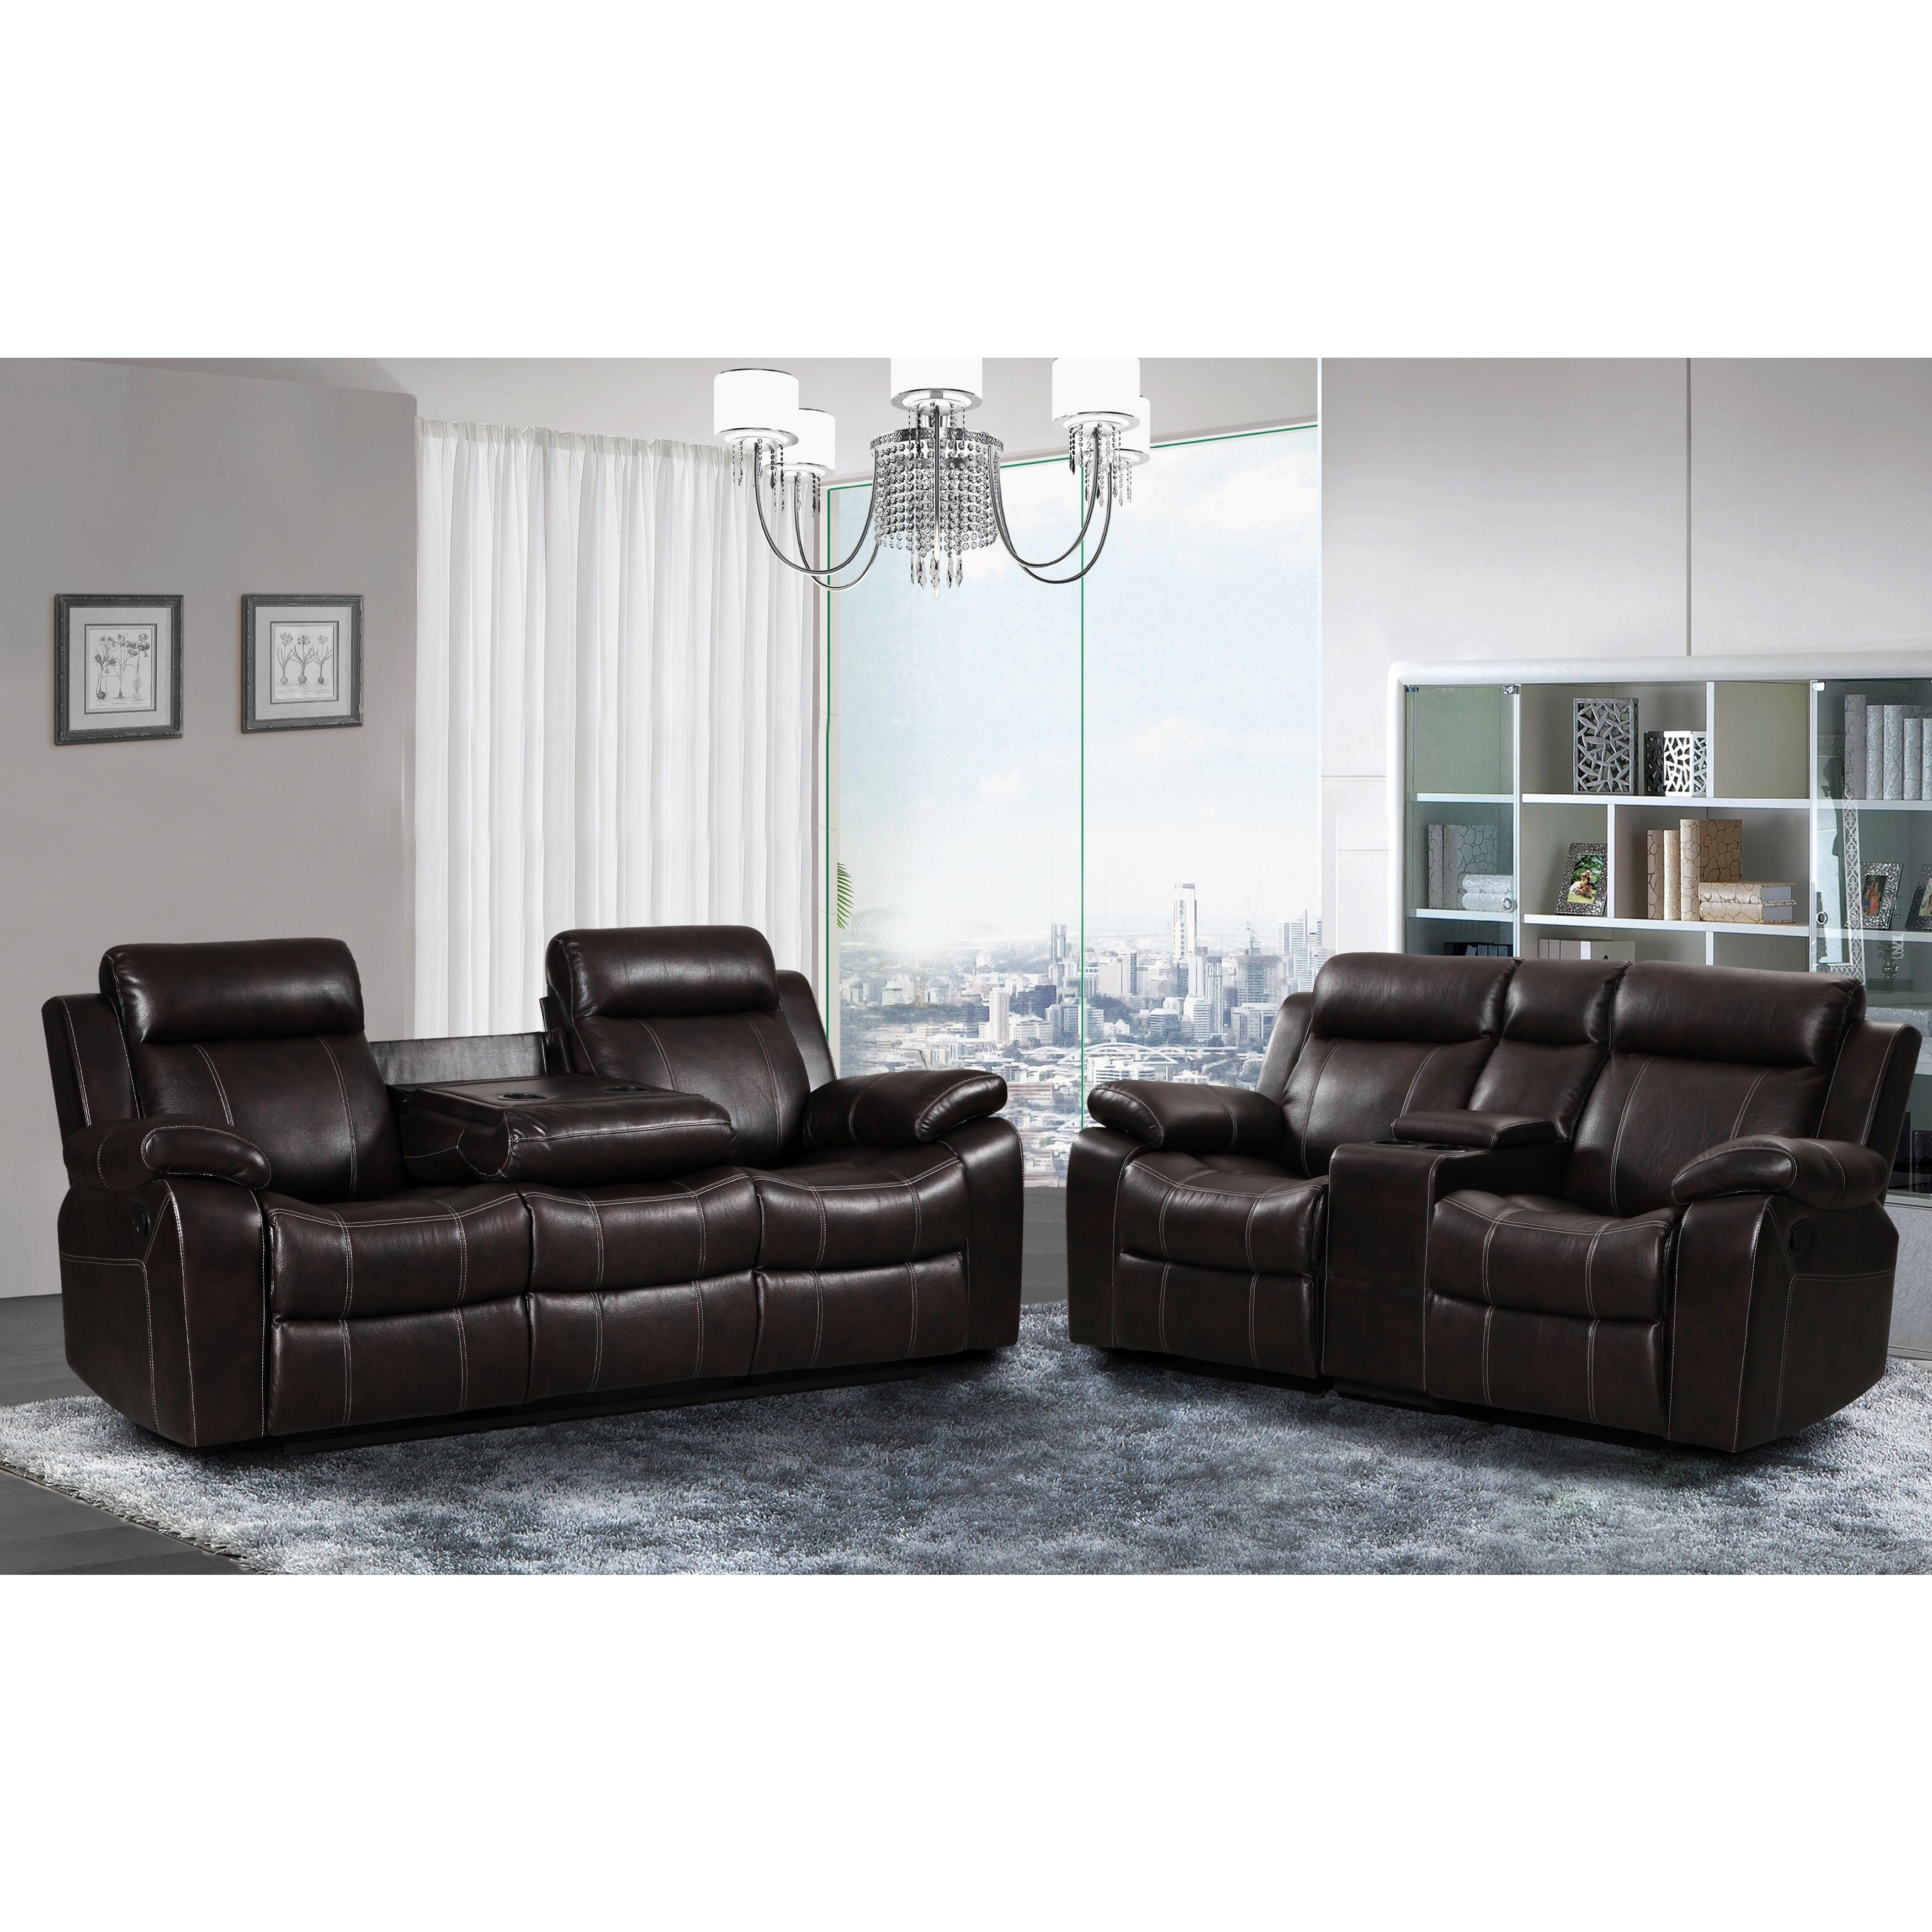 Shop Sherry Dark Brown Leather Air 2 pc Reclining Sofa and Gliding ...